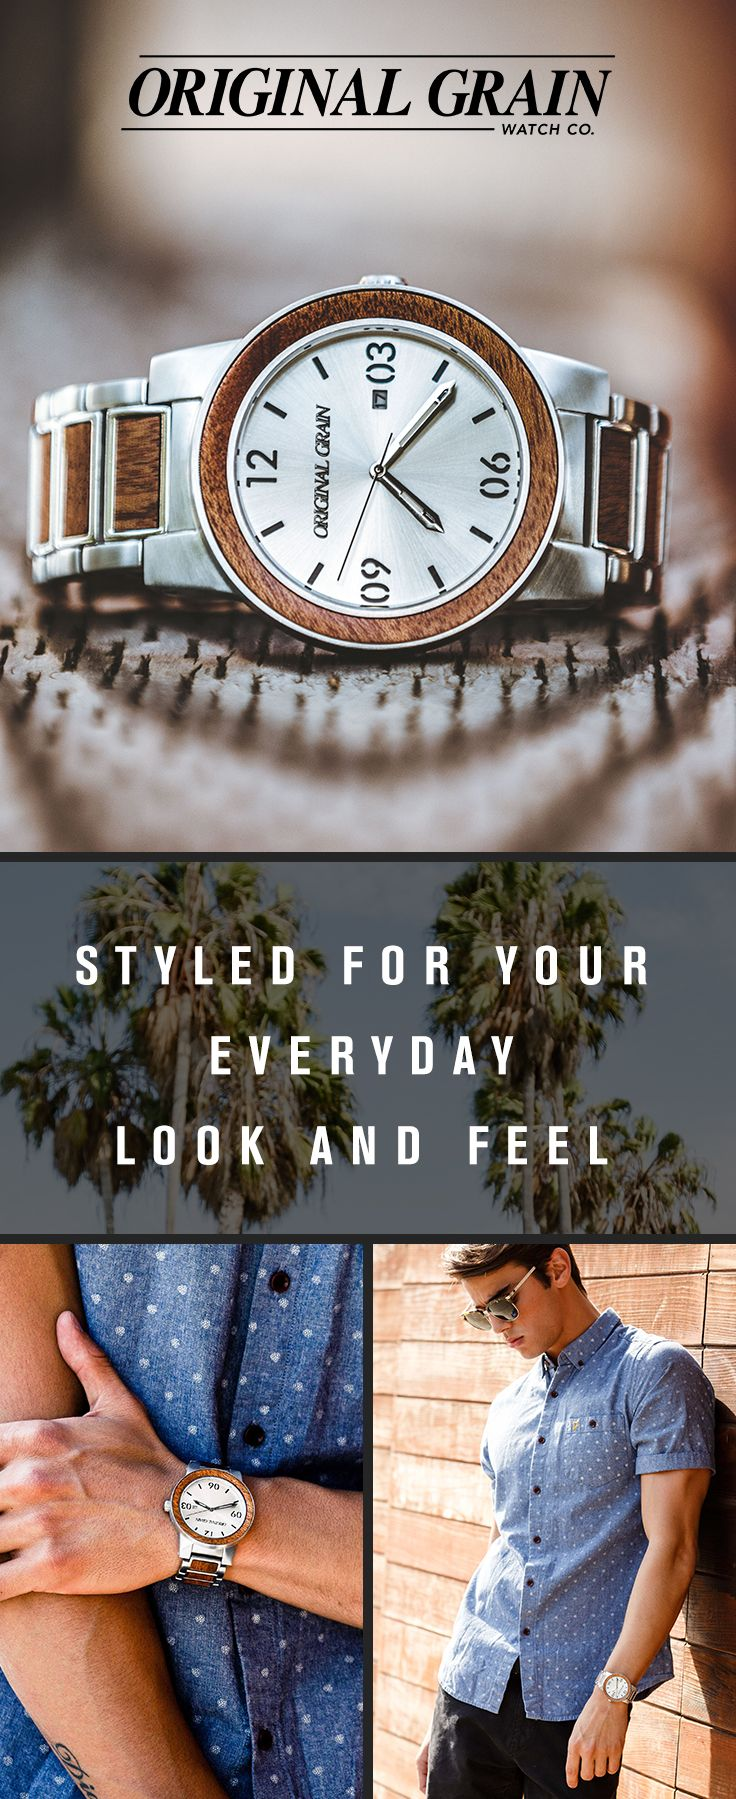 Looking for the perfect gift? Our wood & steel watches are one of a kind and made with some of the world's finest exotic hardwood. Dress it up or dress it down, these are the season's most wearable trend! Starting at $150 with free shipping worldwide!